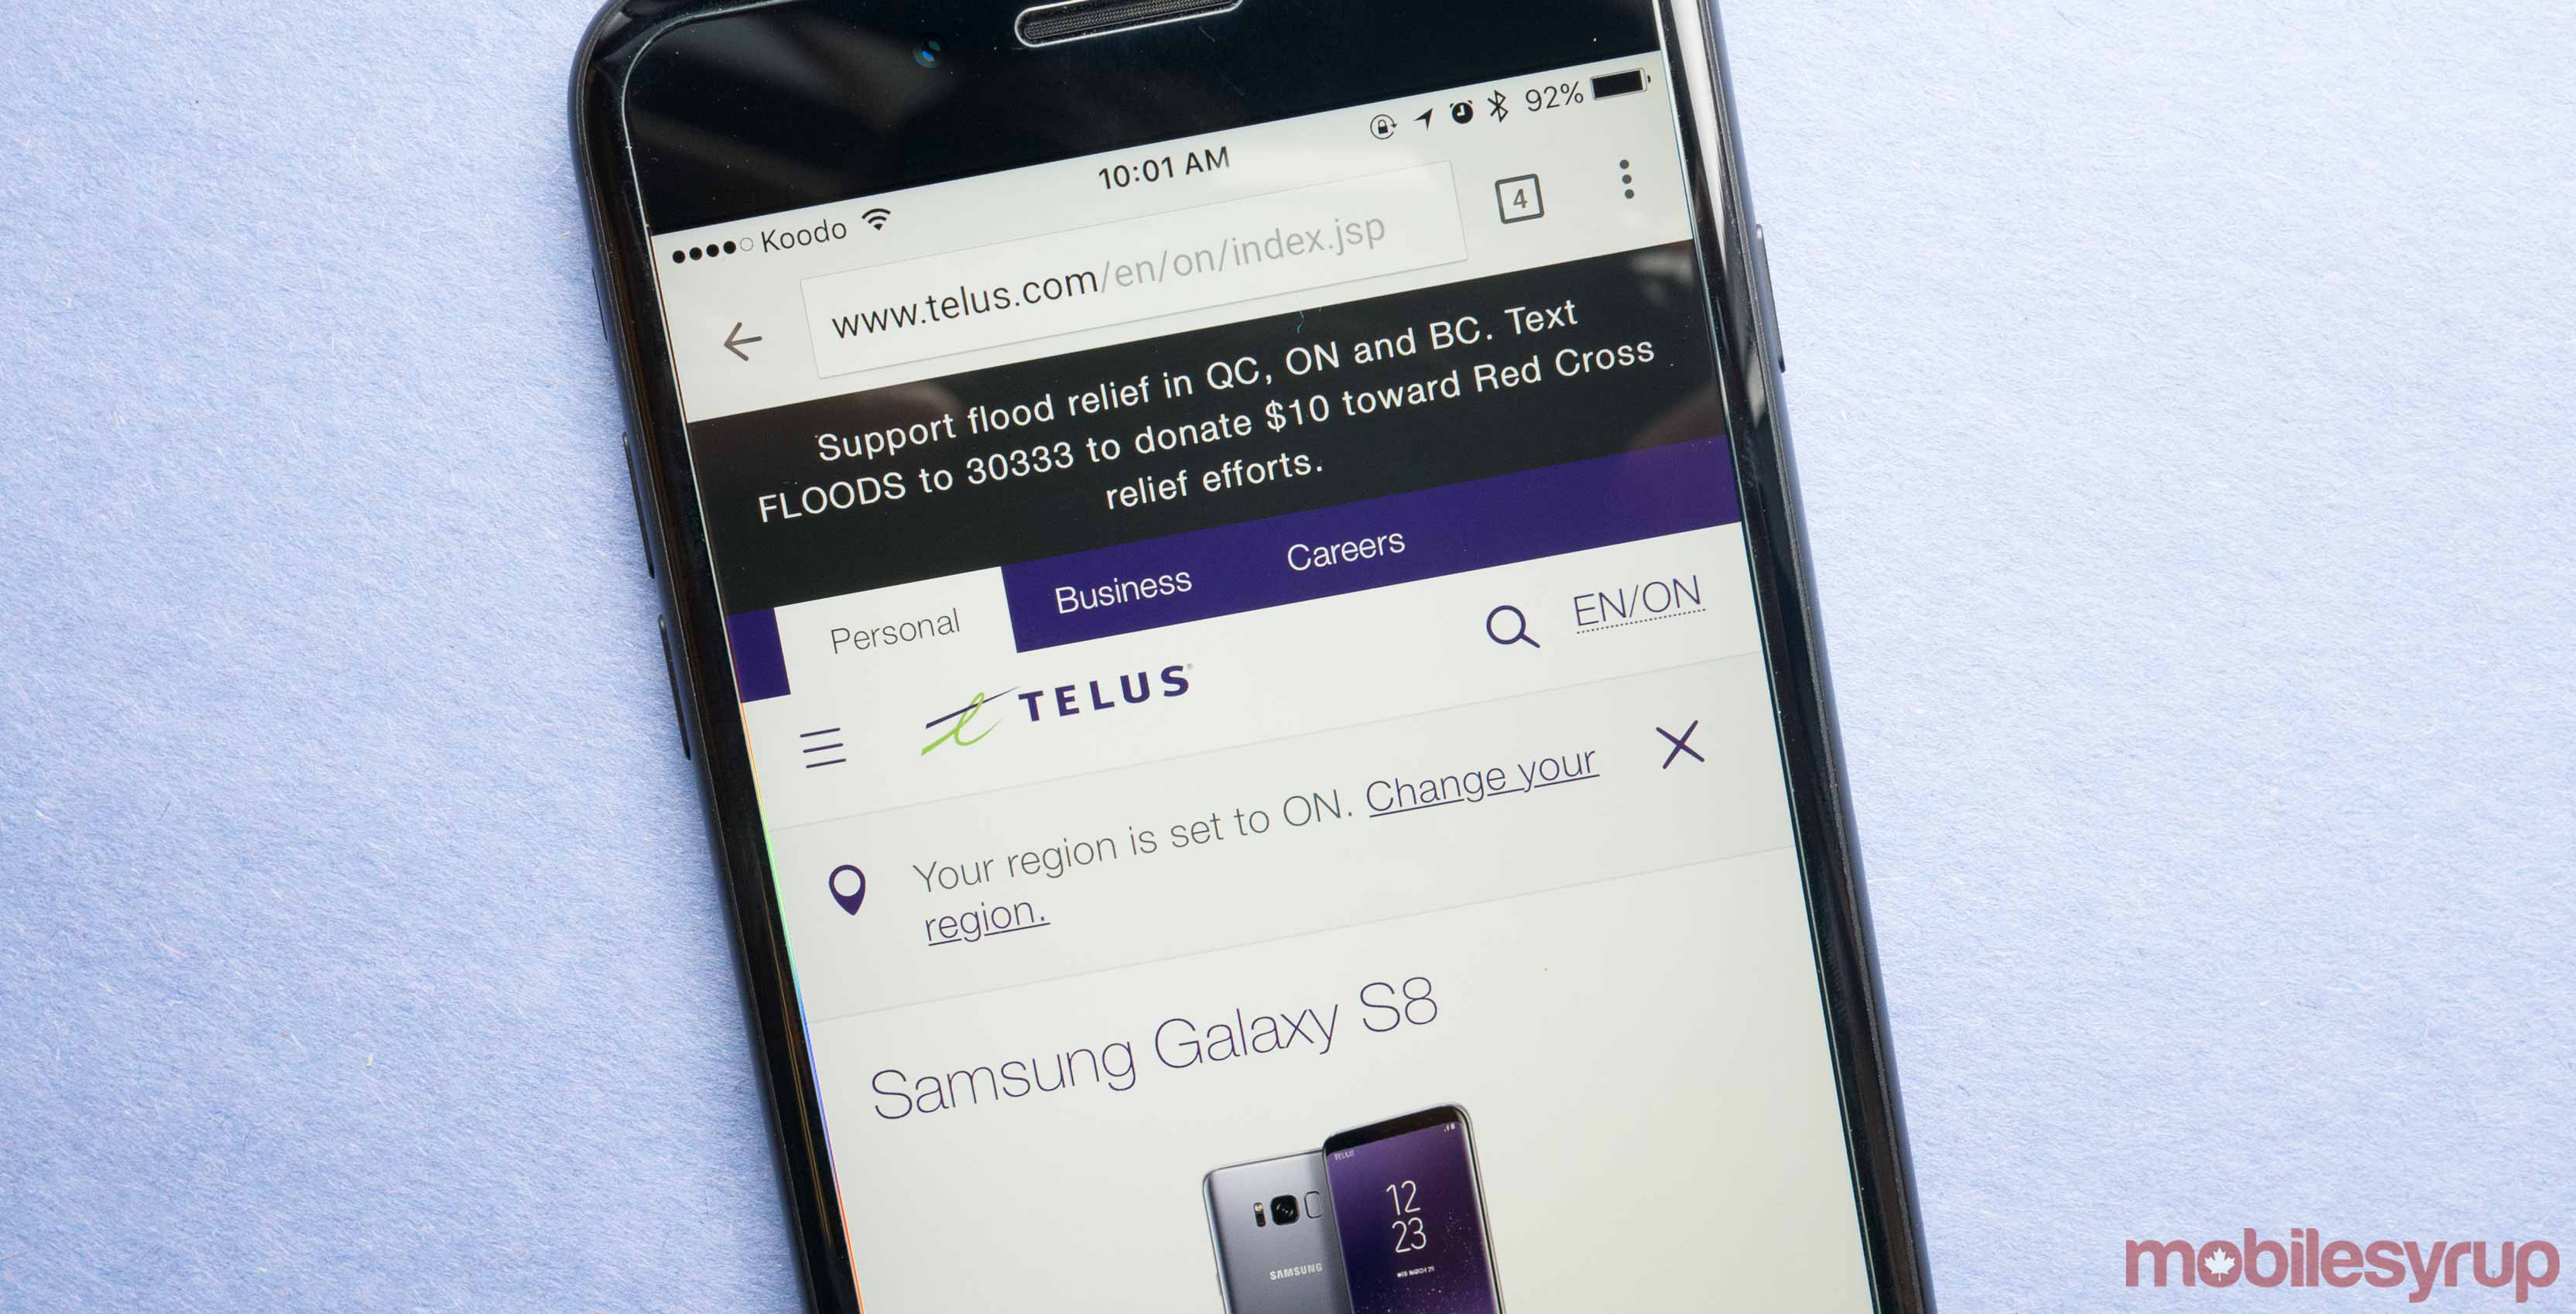 Can you hook up a koodo phone with telus